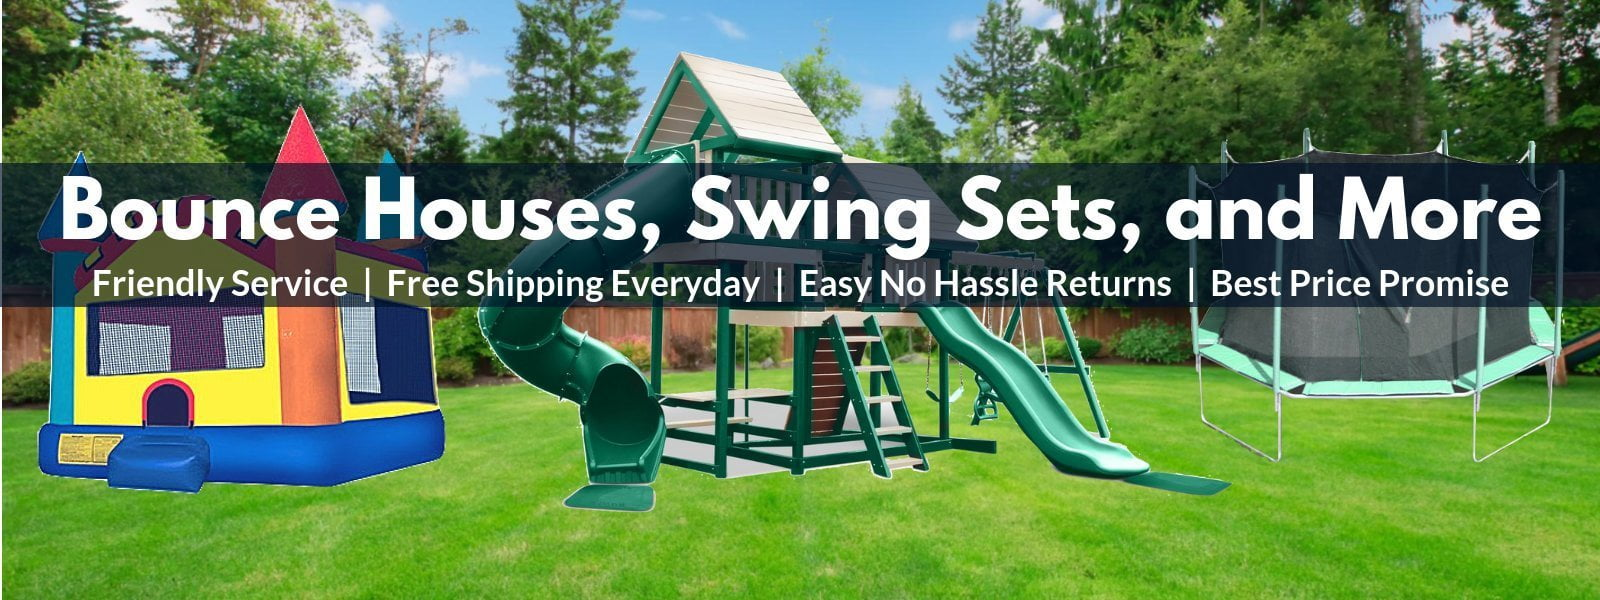 bounce houses, swing sets, and outdoor play equipment